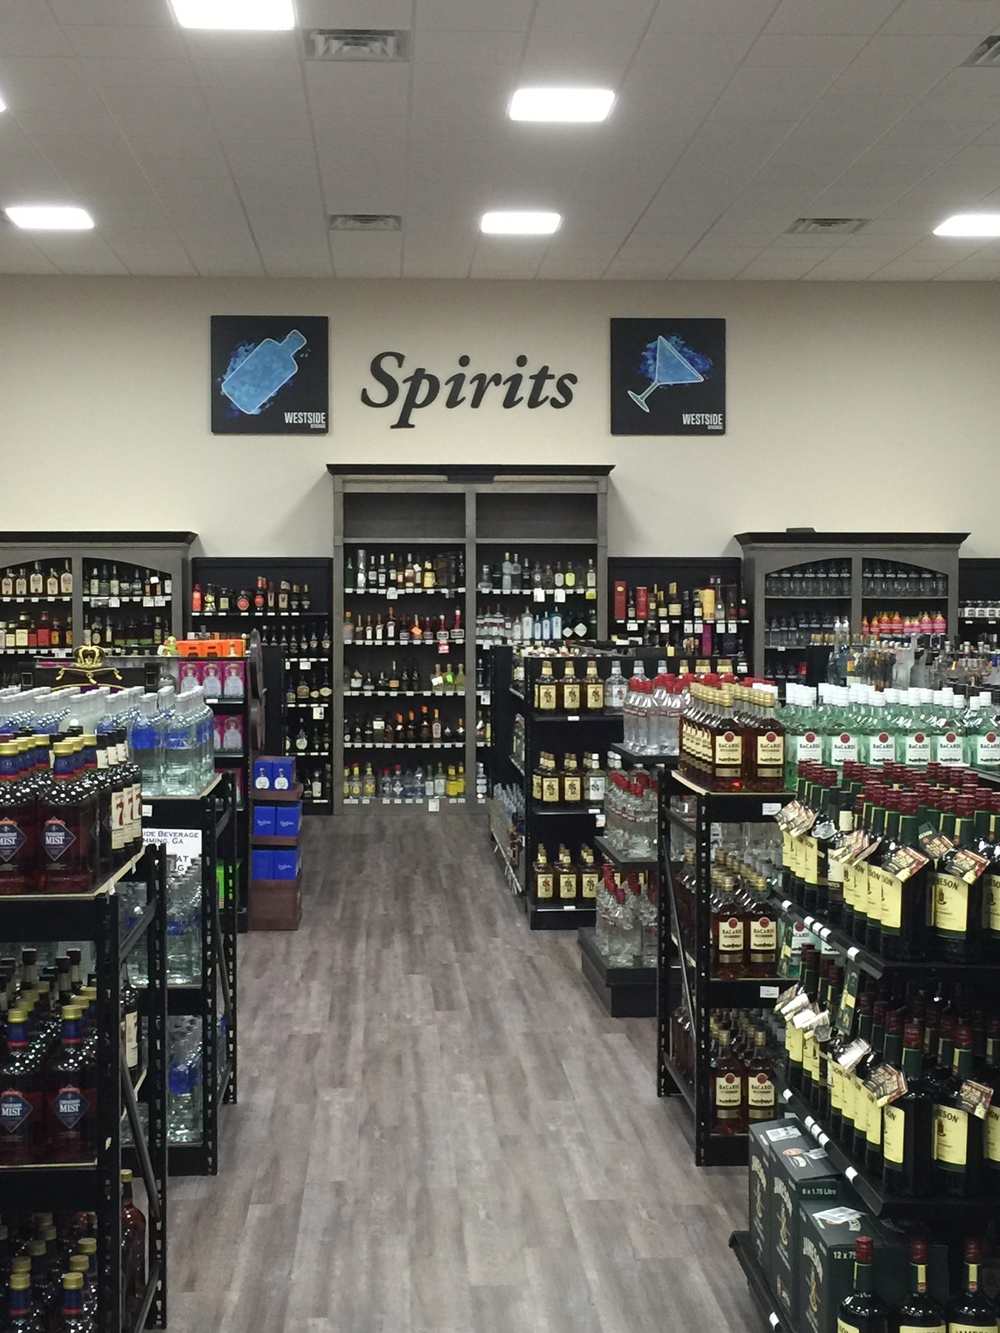 westside beverage liquor and spirits selection in cumming georgia